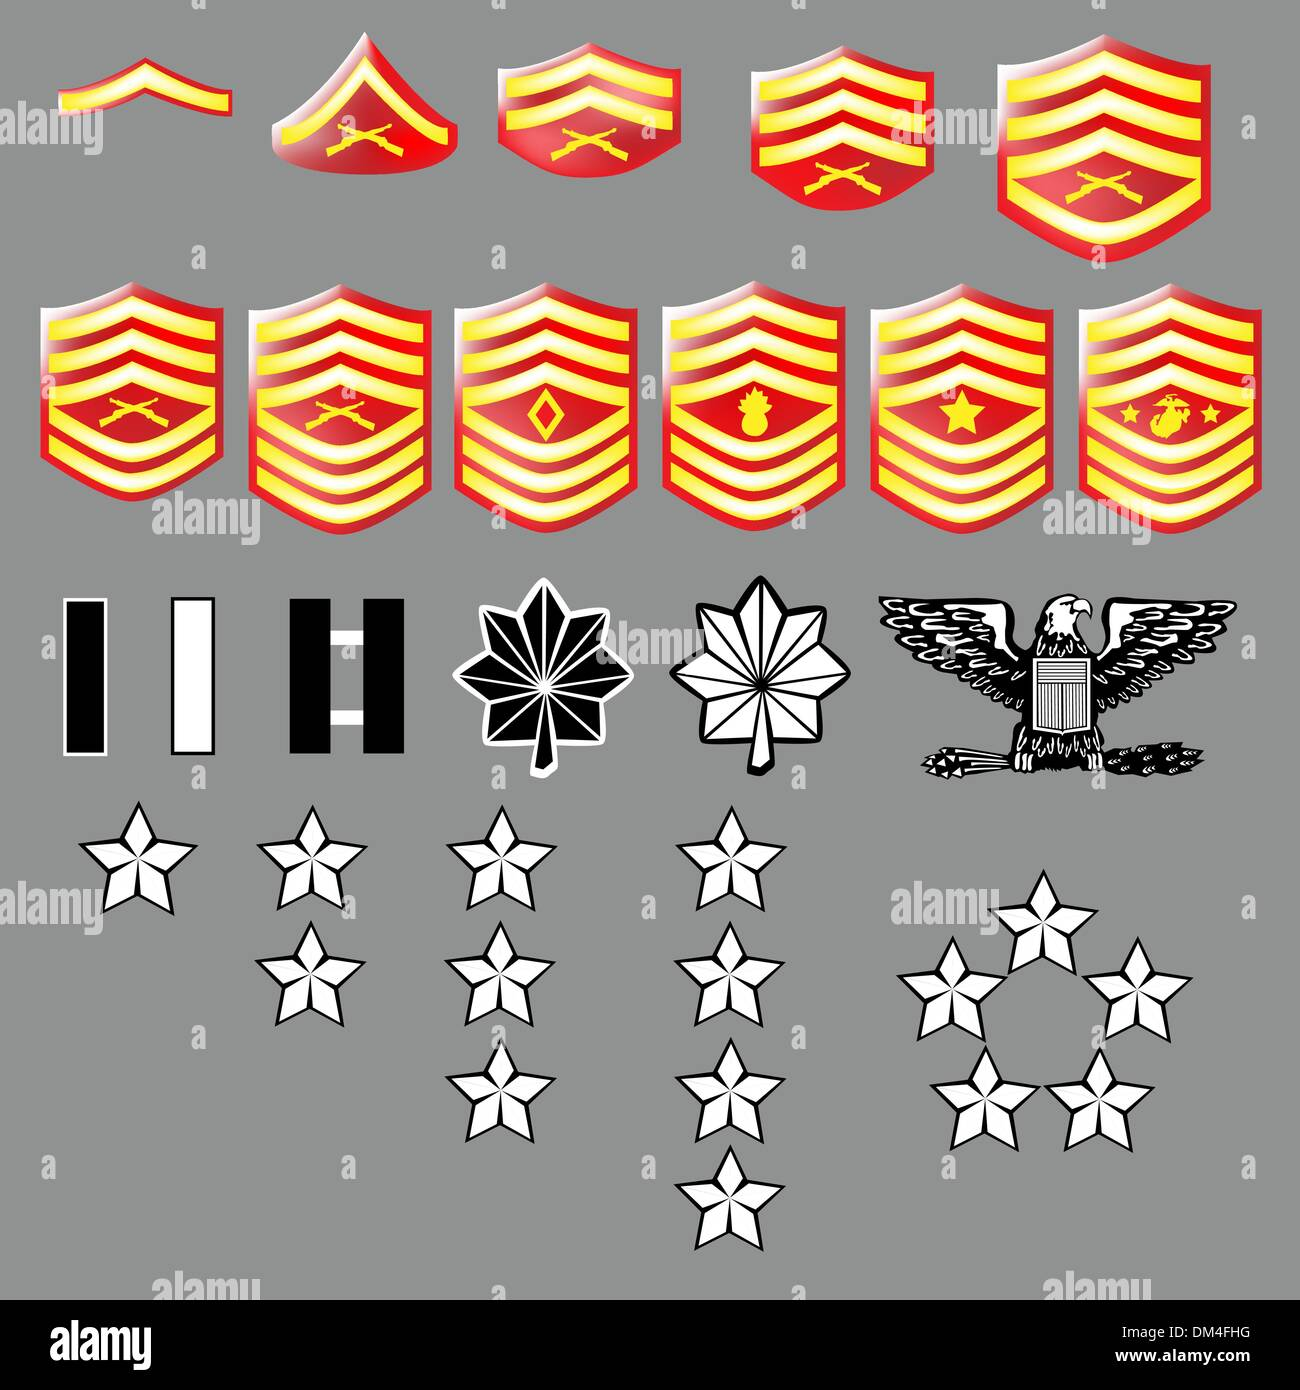 Us marine corps rank insignia textured stock vector art us marine corps rank insignia textured buycottarizona Image collections